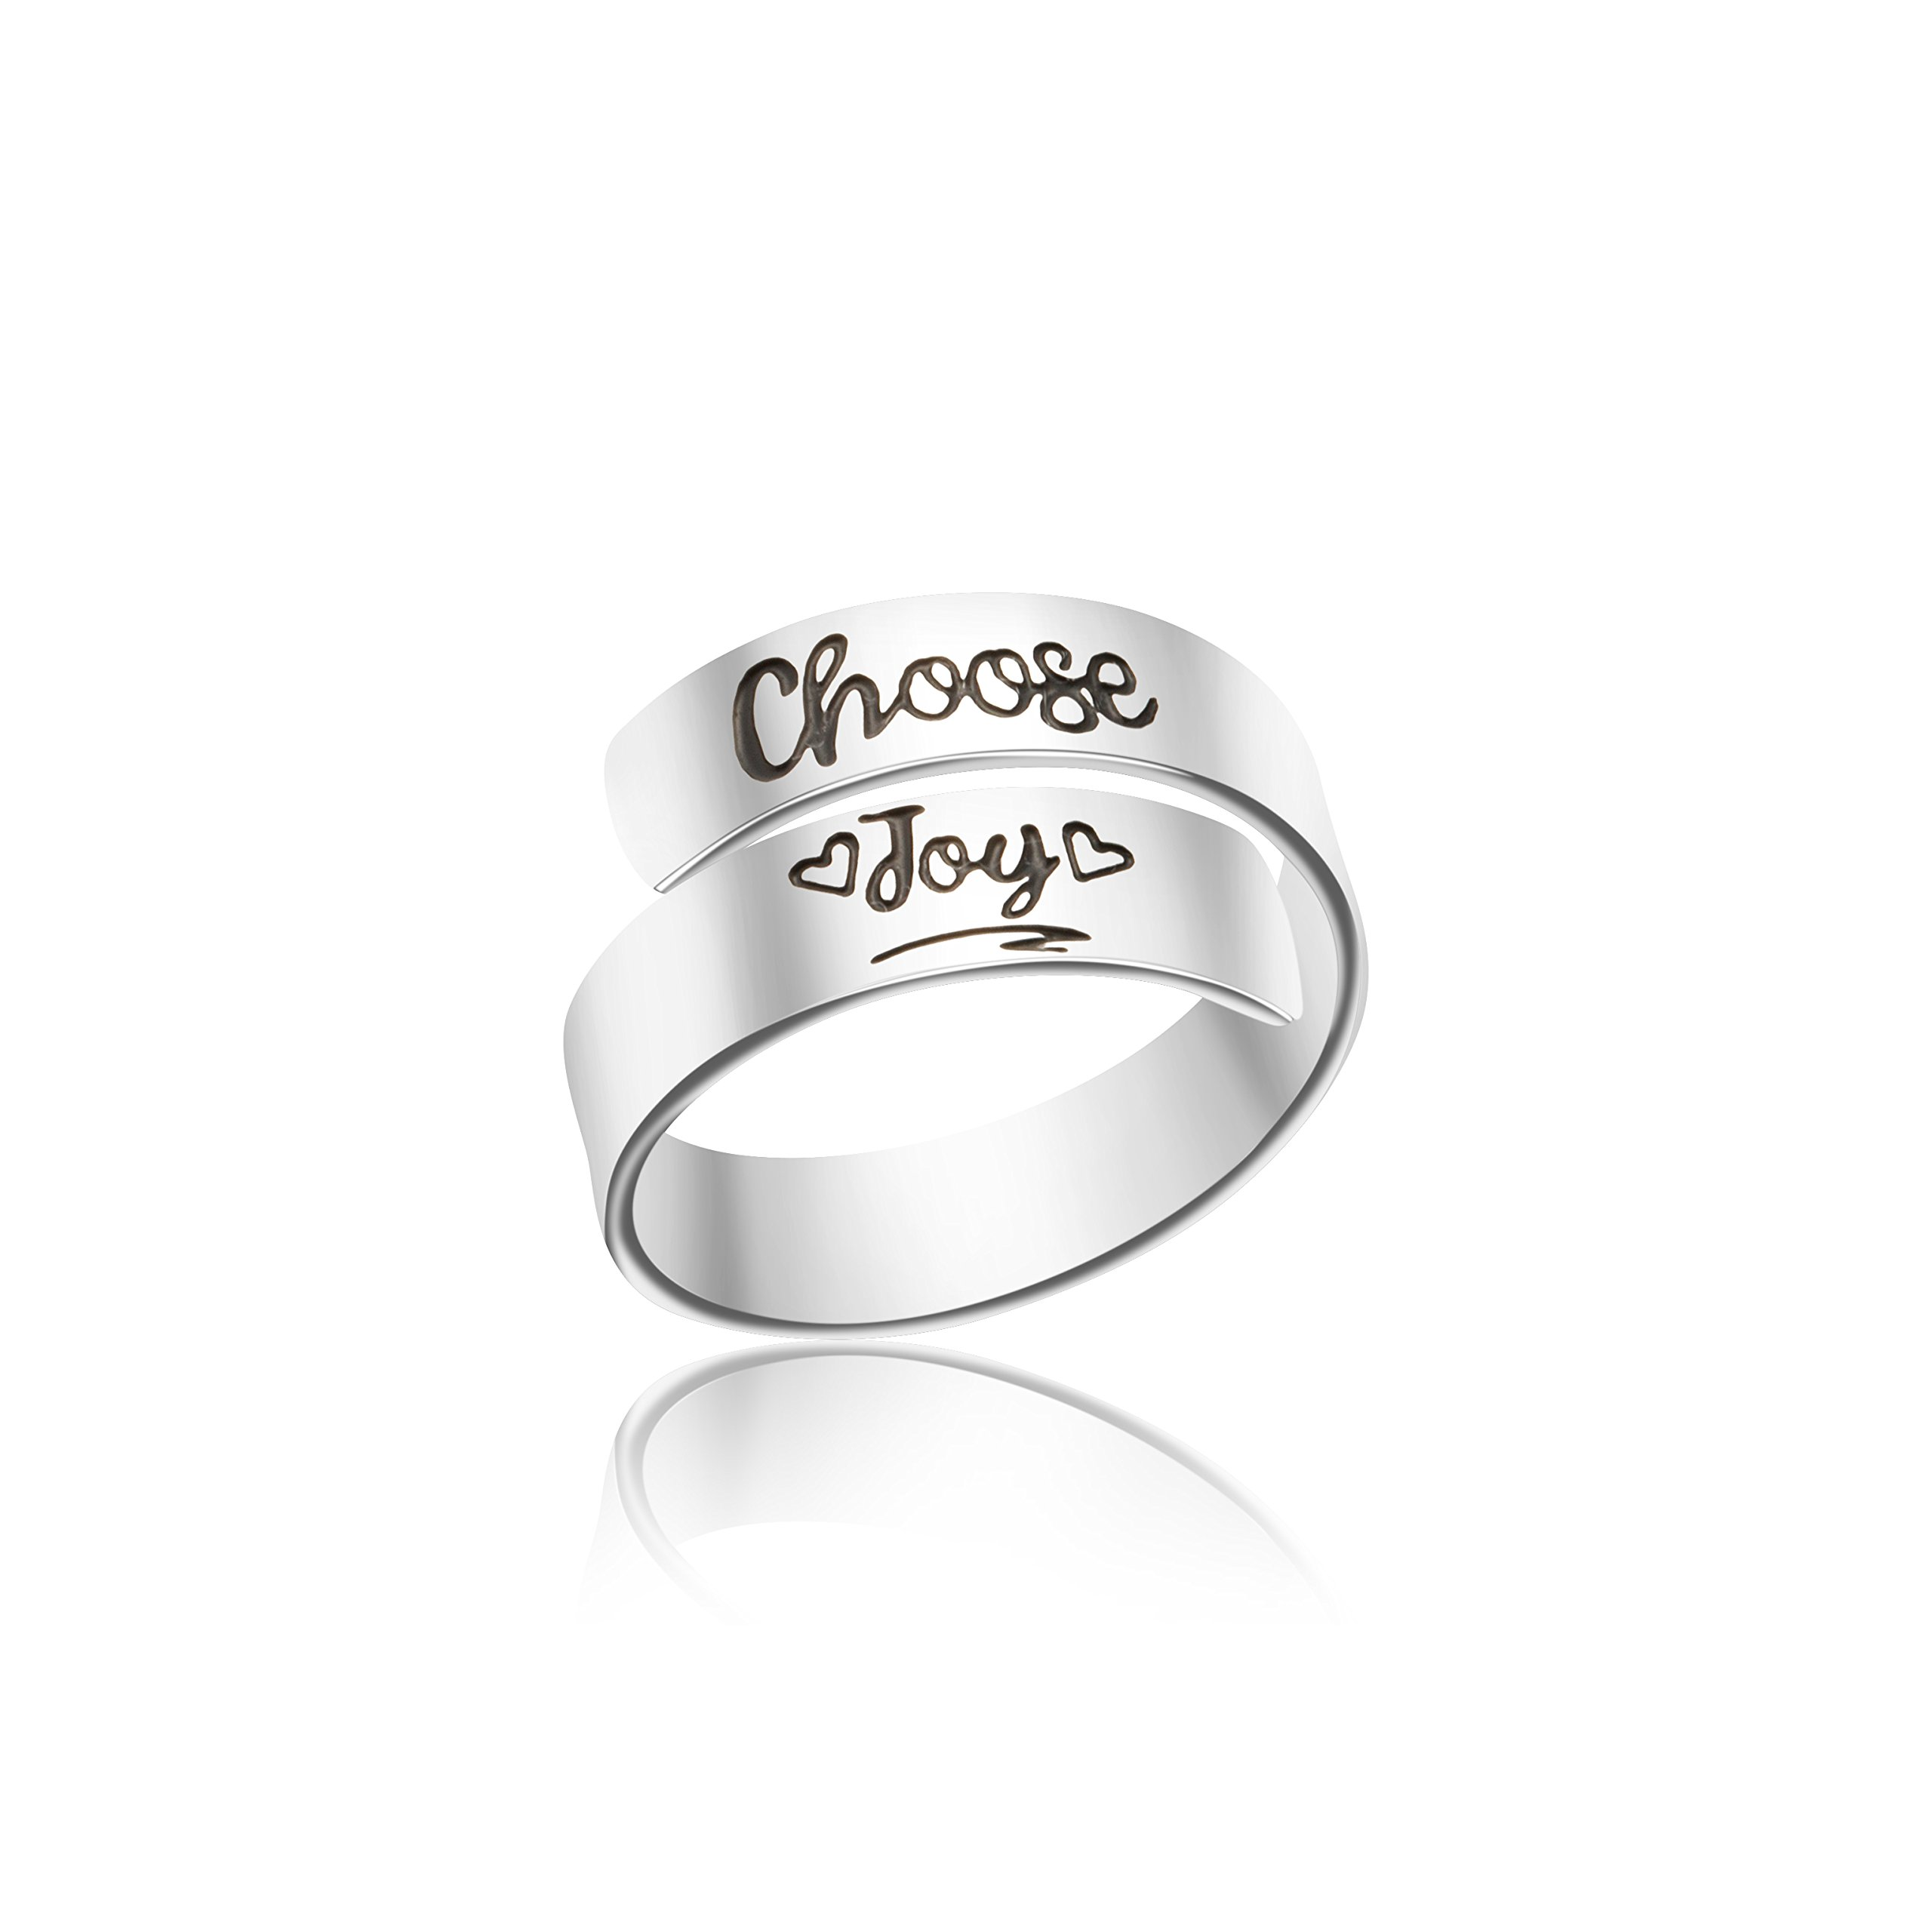 Yiyang Wrap Rings Promise Gifts Birthday Jewelry for Her Inspirational (Choose joy)